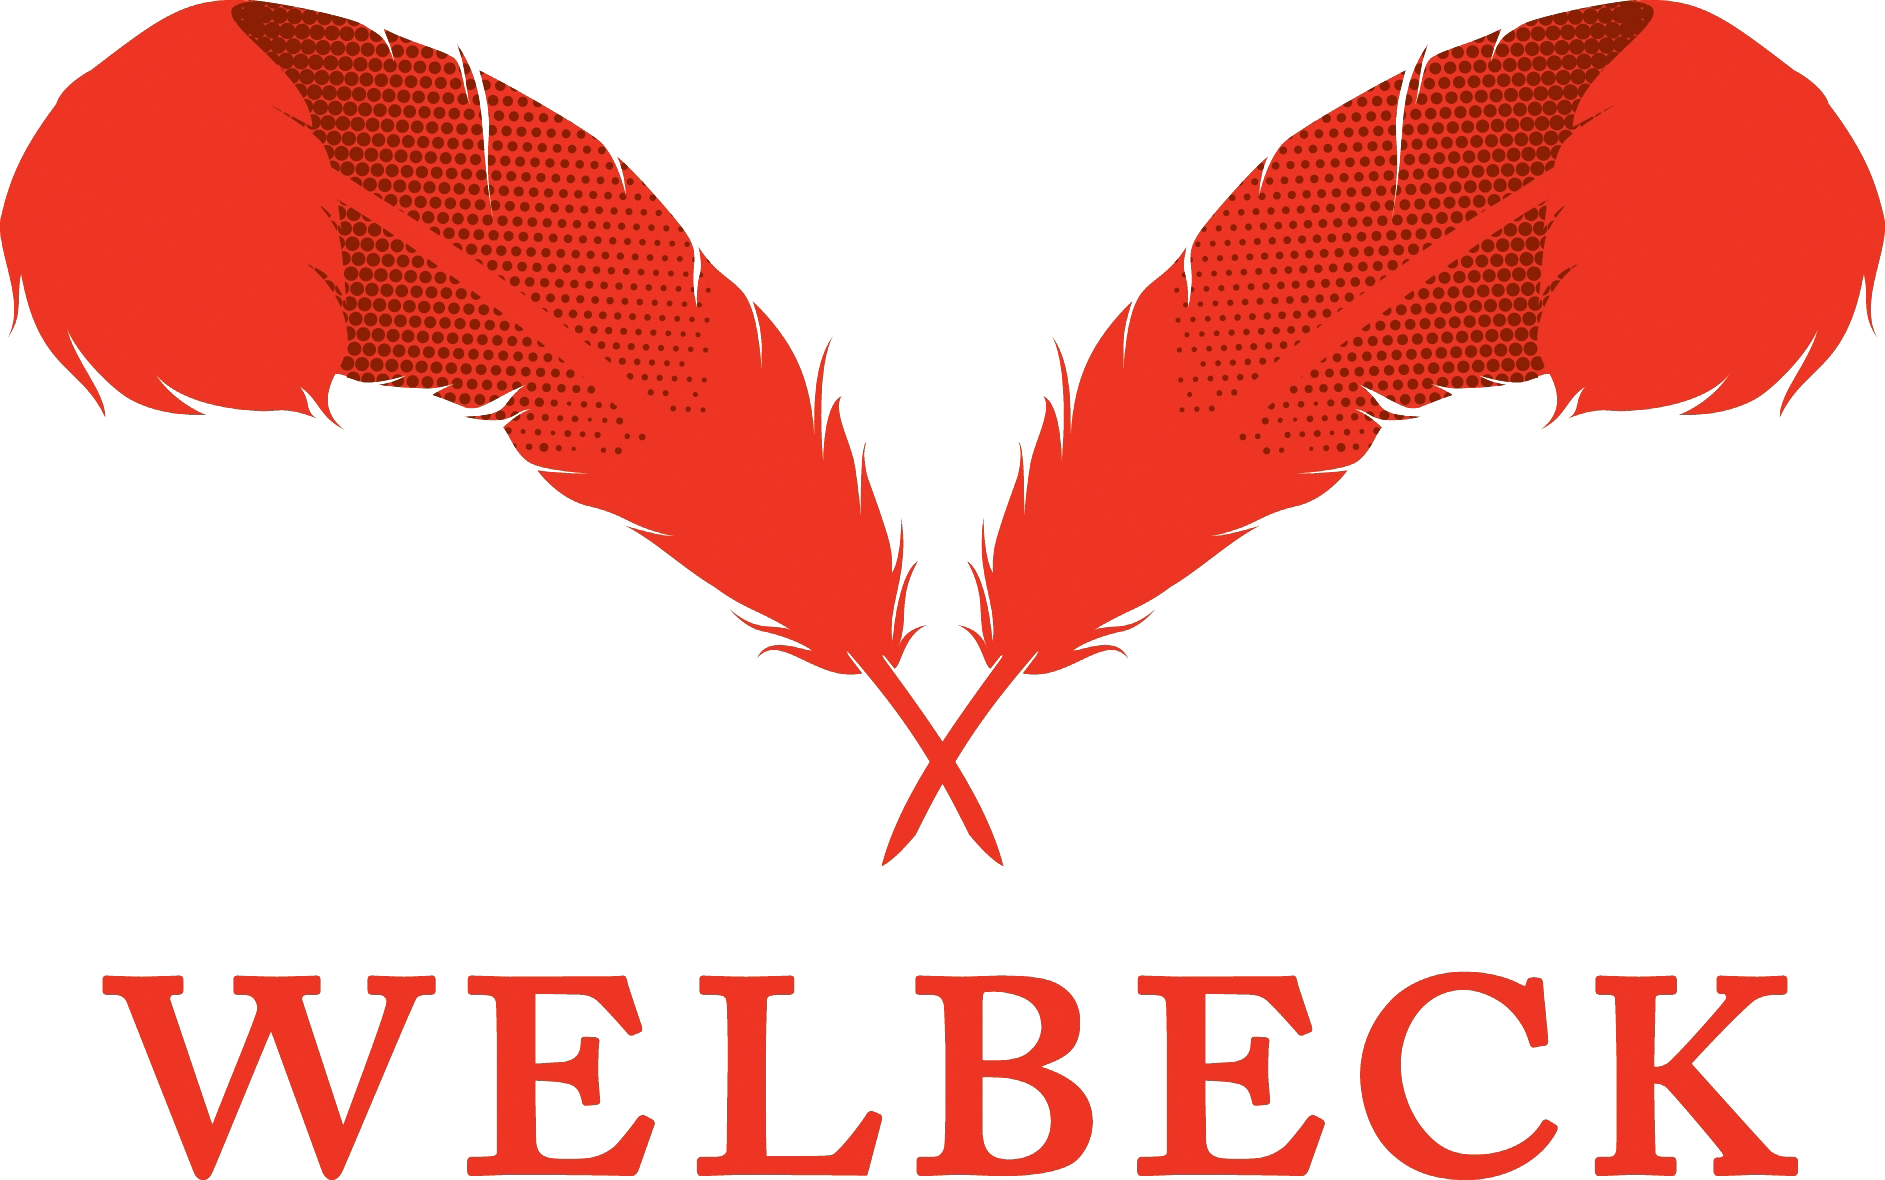 The Welbeck logo